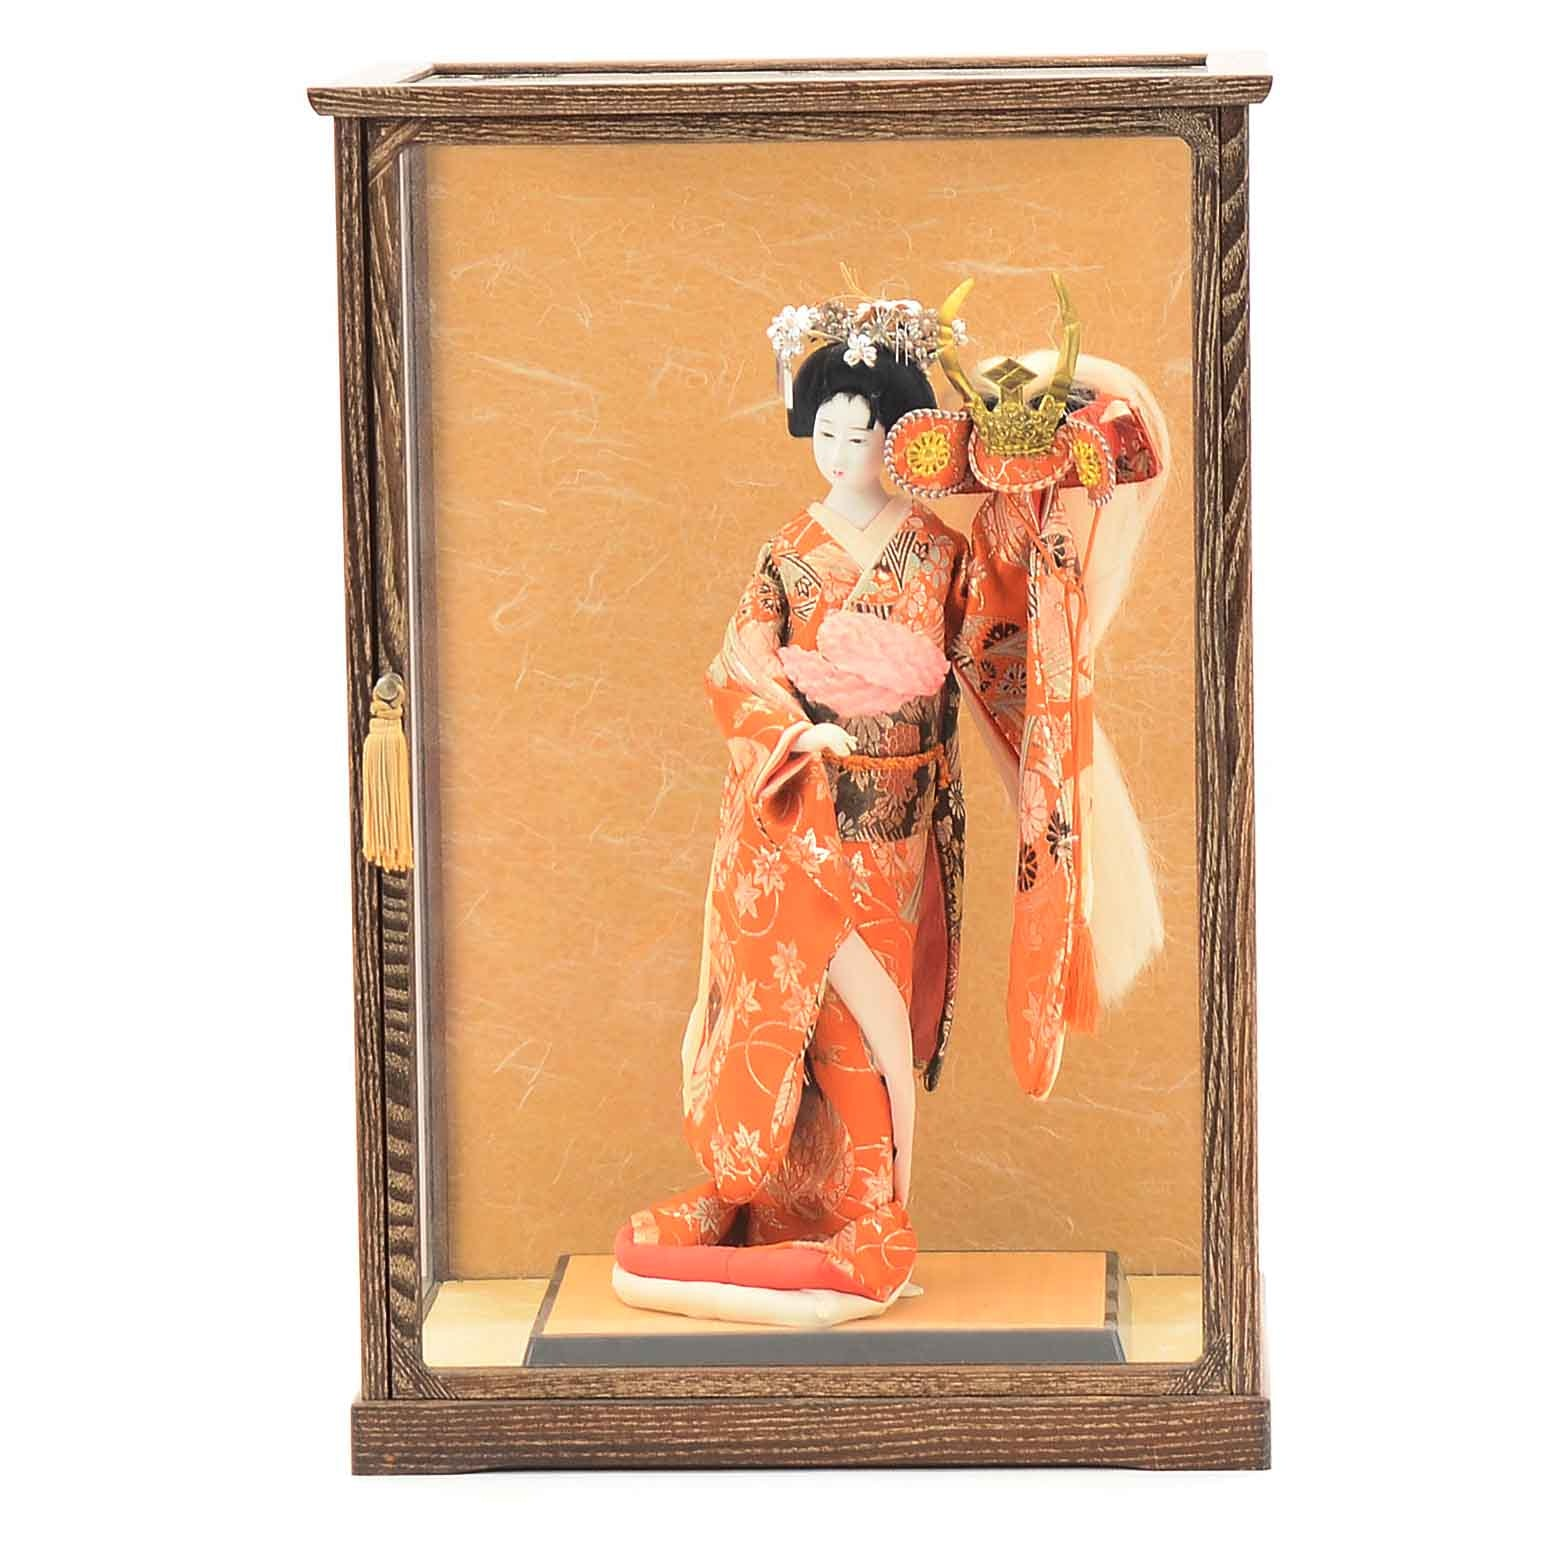 Japanese Female Figure with a Samurai Helmet and Glass Display Case